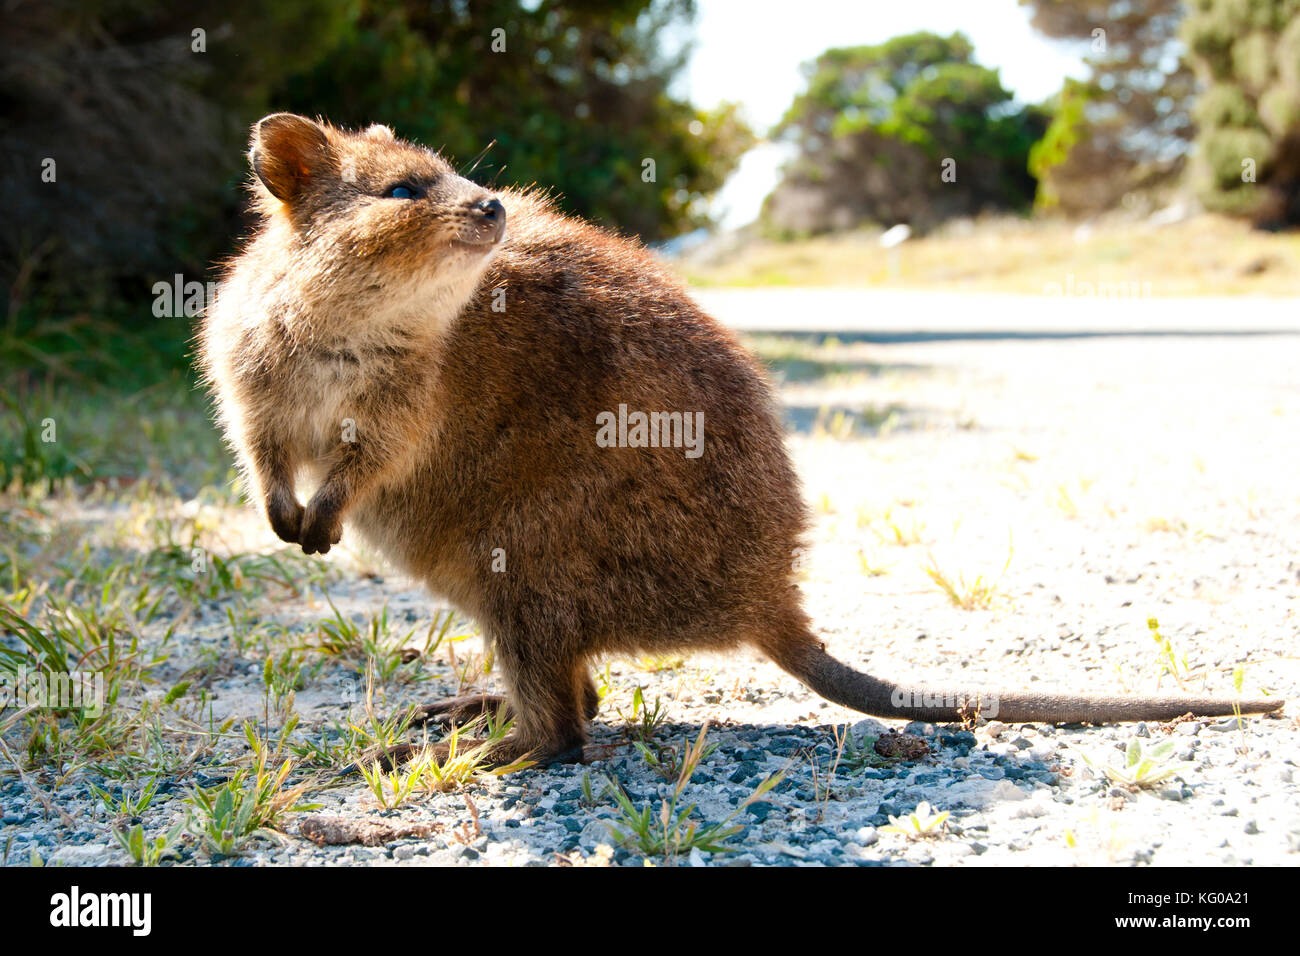 Quokka High Resolution Stock Photography and Images - Alamy